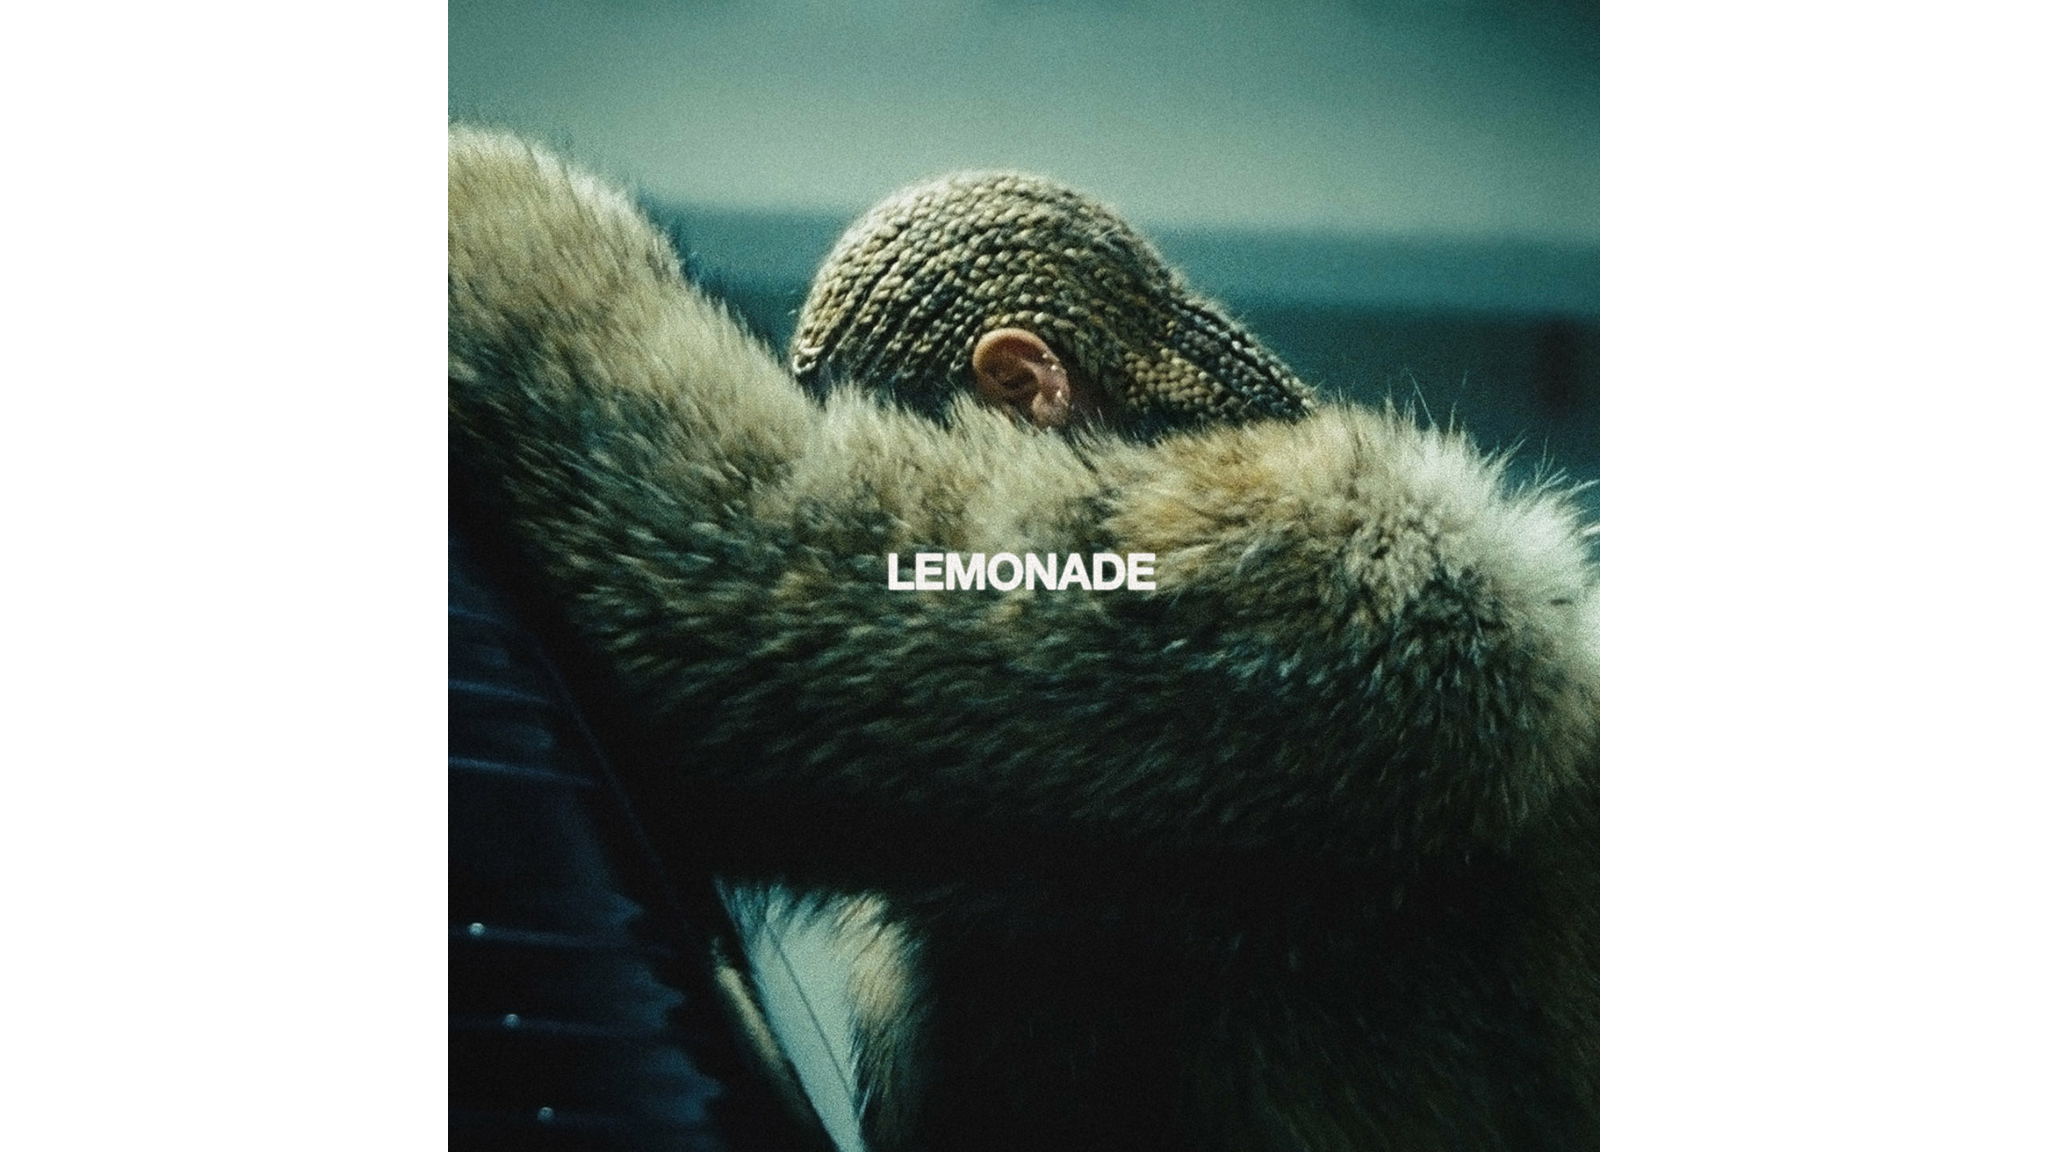 Beyoncé – 'Lemonade' album review